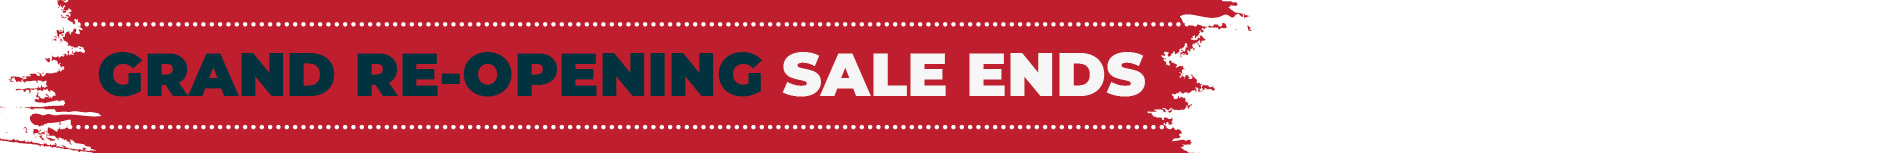 Re-opening Sale Ends Sunday